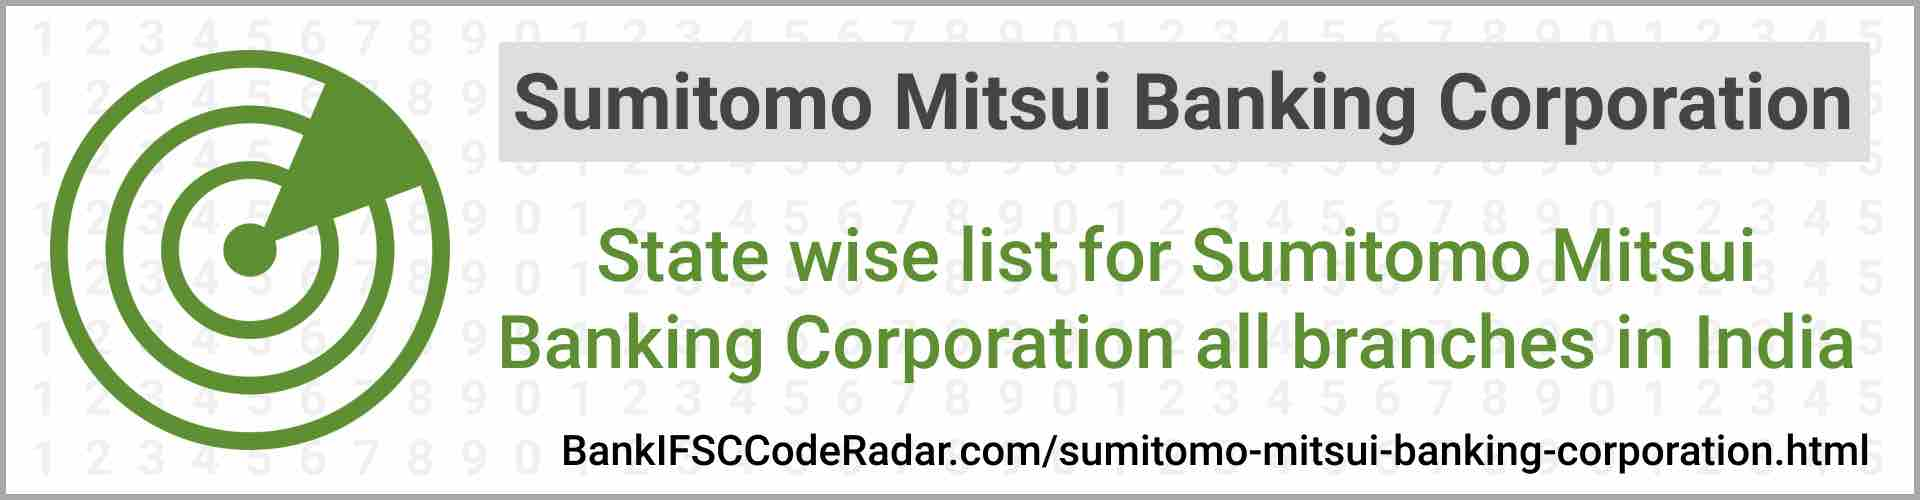 Sumitomo Mitsui Banking Corporation All Branches India